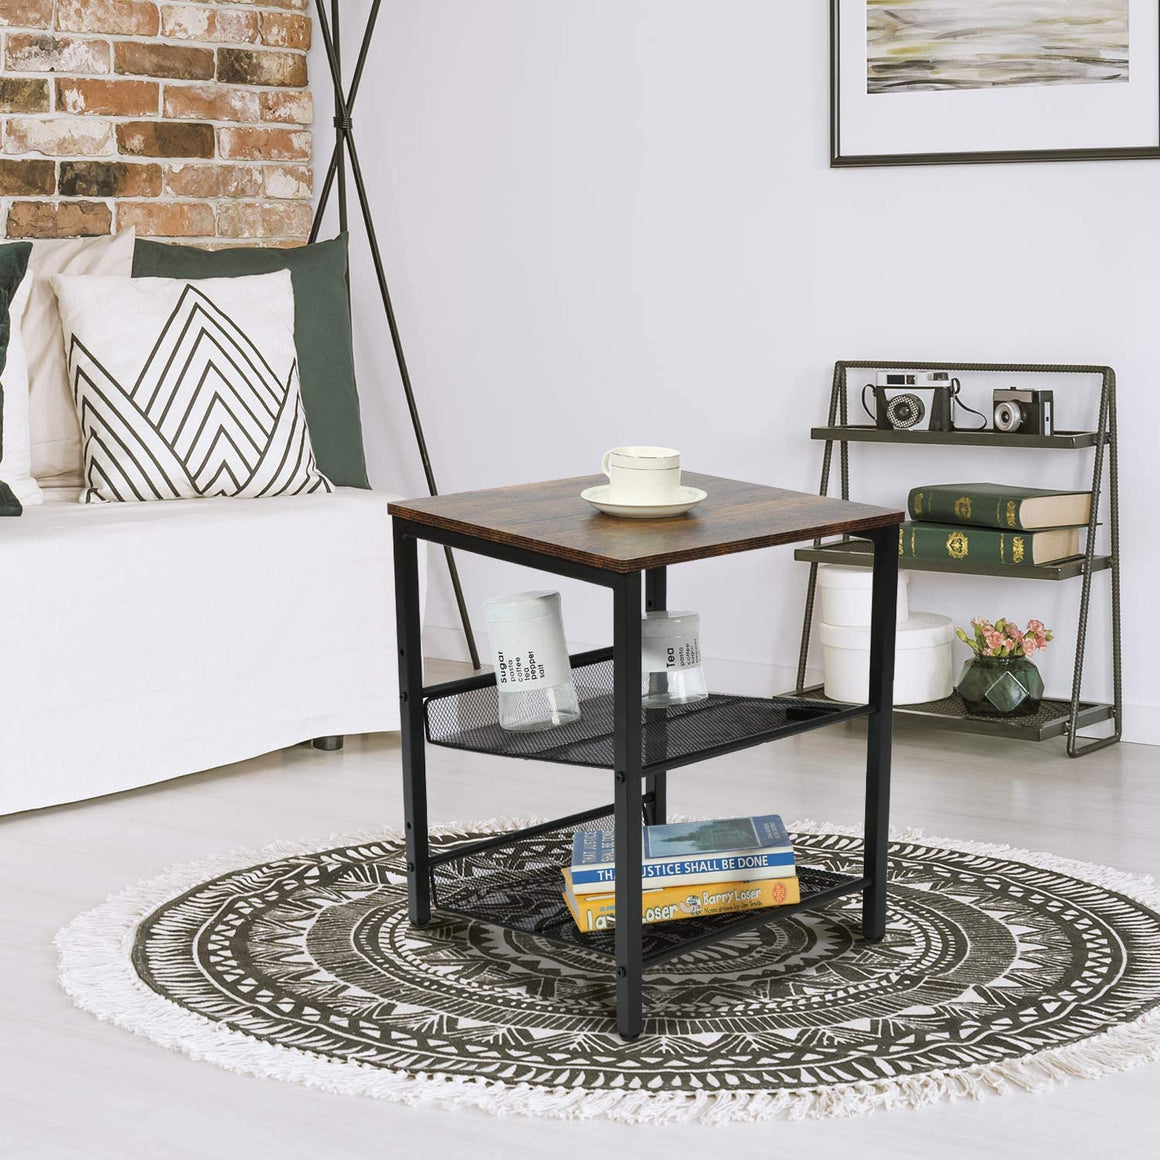 End Table, Vintage Nightstand with Storage Rack